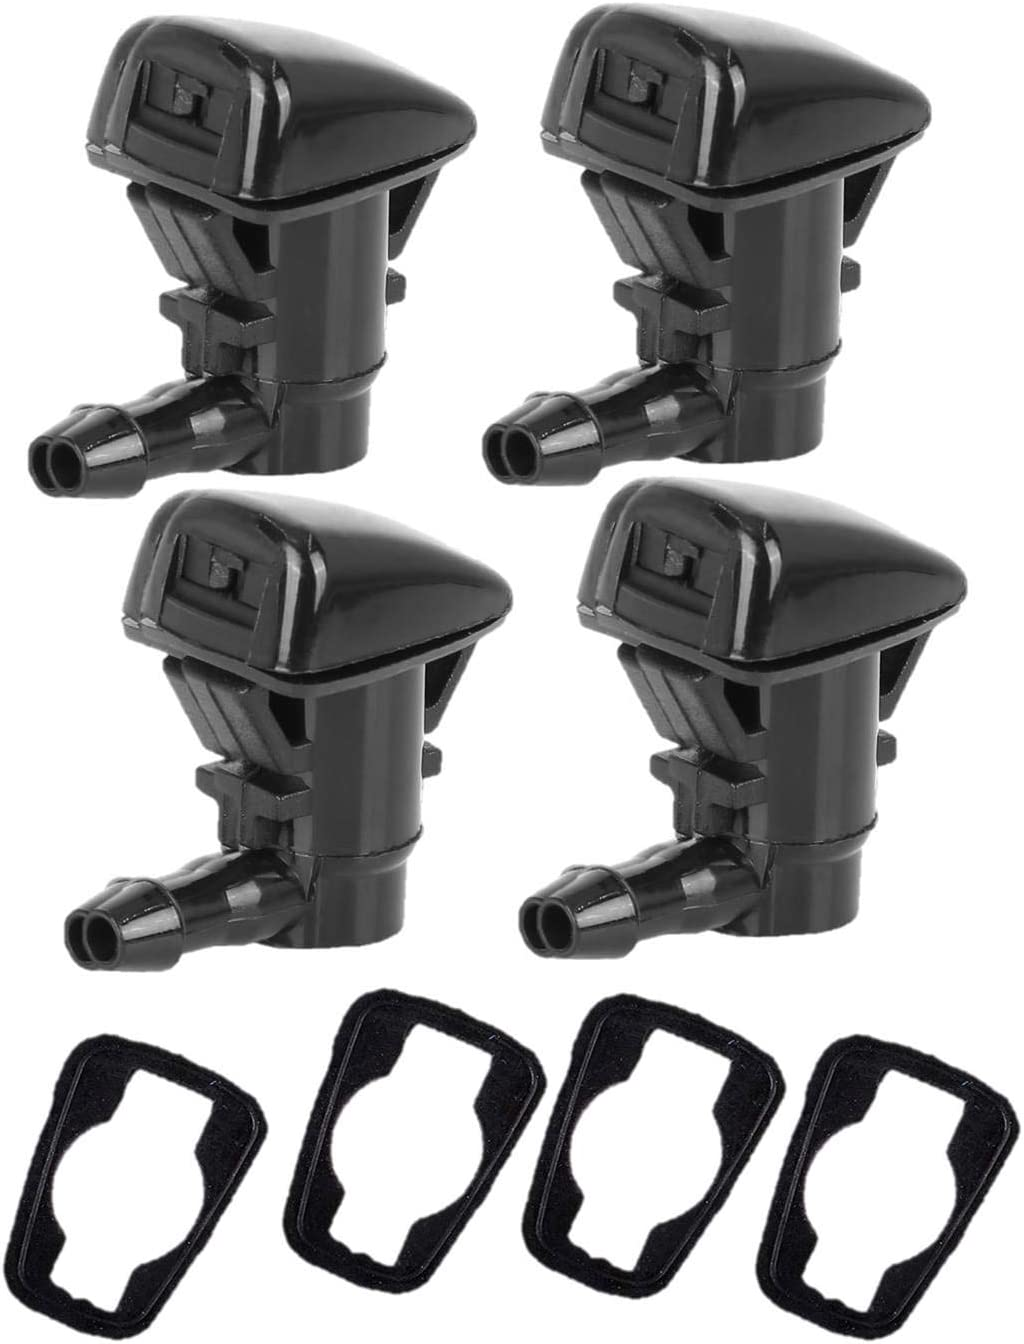 4 Pack Front Windshield Washer 350 F250 with Mesa Mall Compatible Miami Mall Nozzles